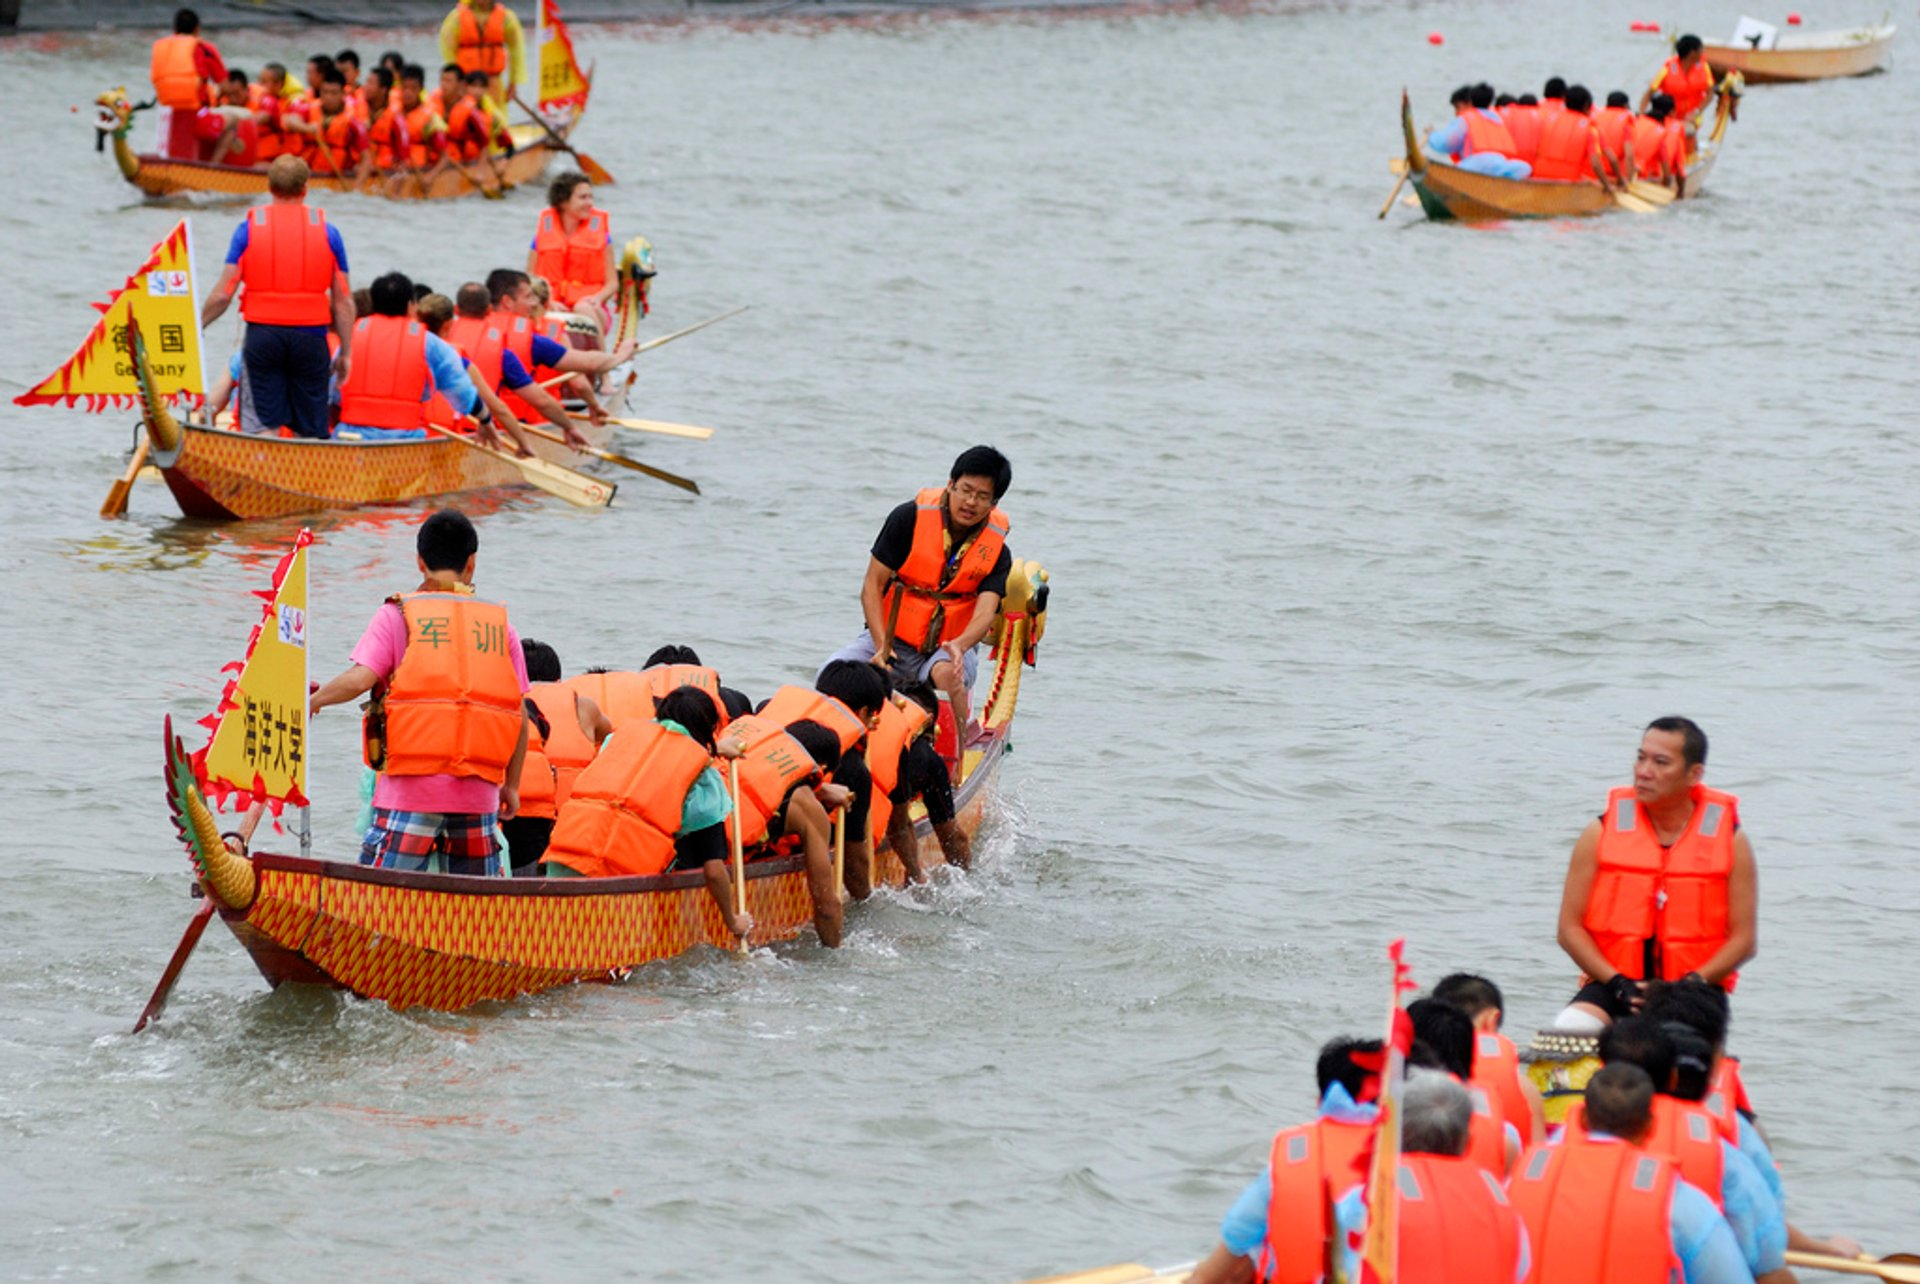 Best time to see Dragon Boat Festival in Shanghai 2019